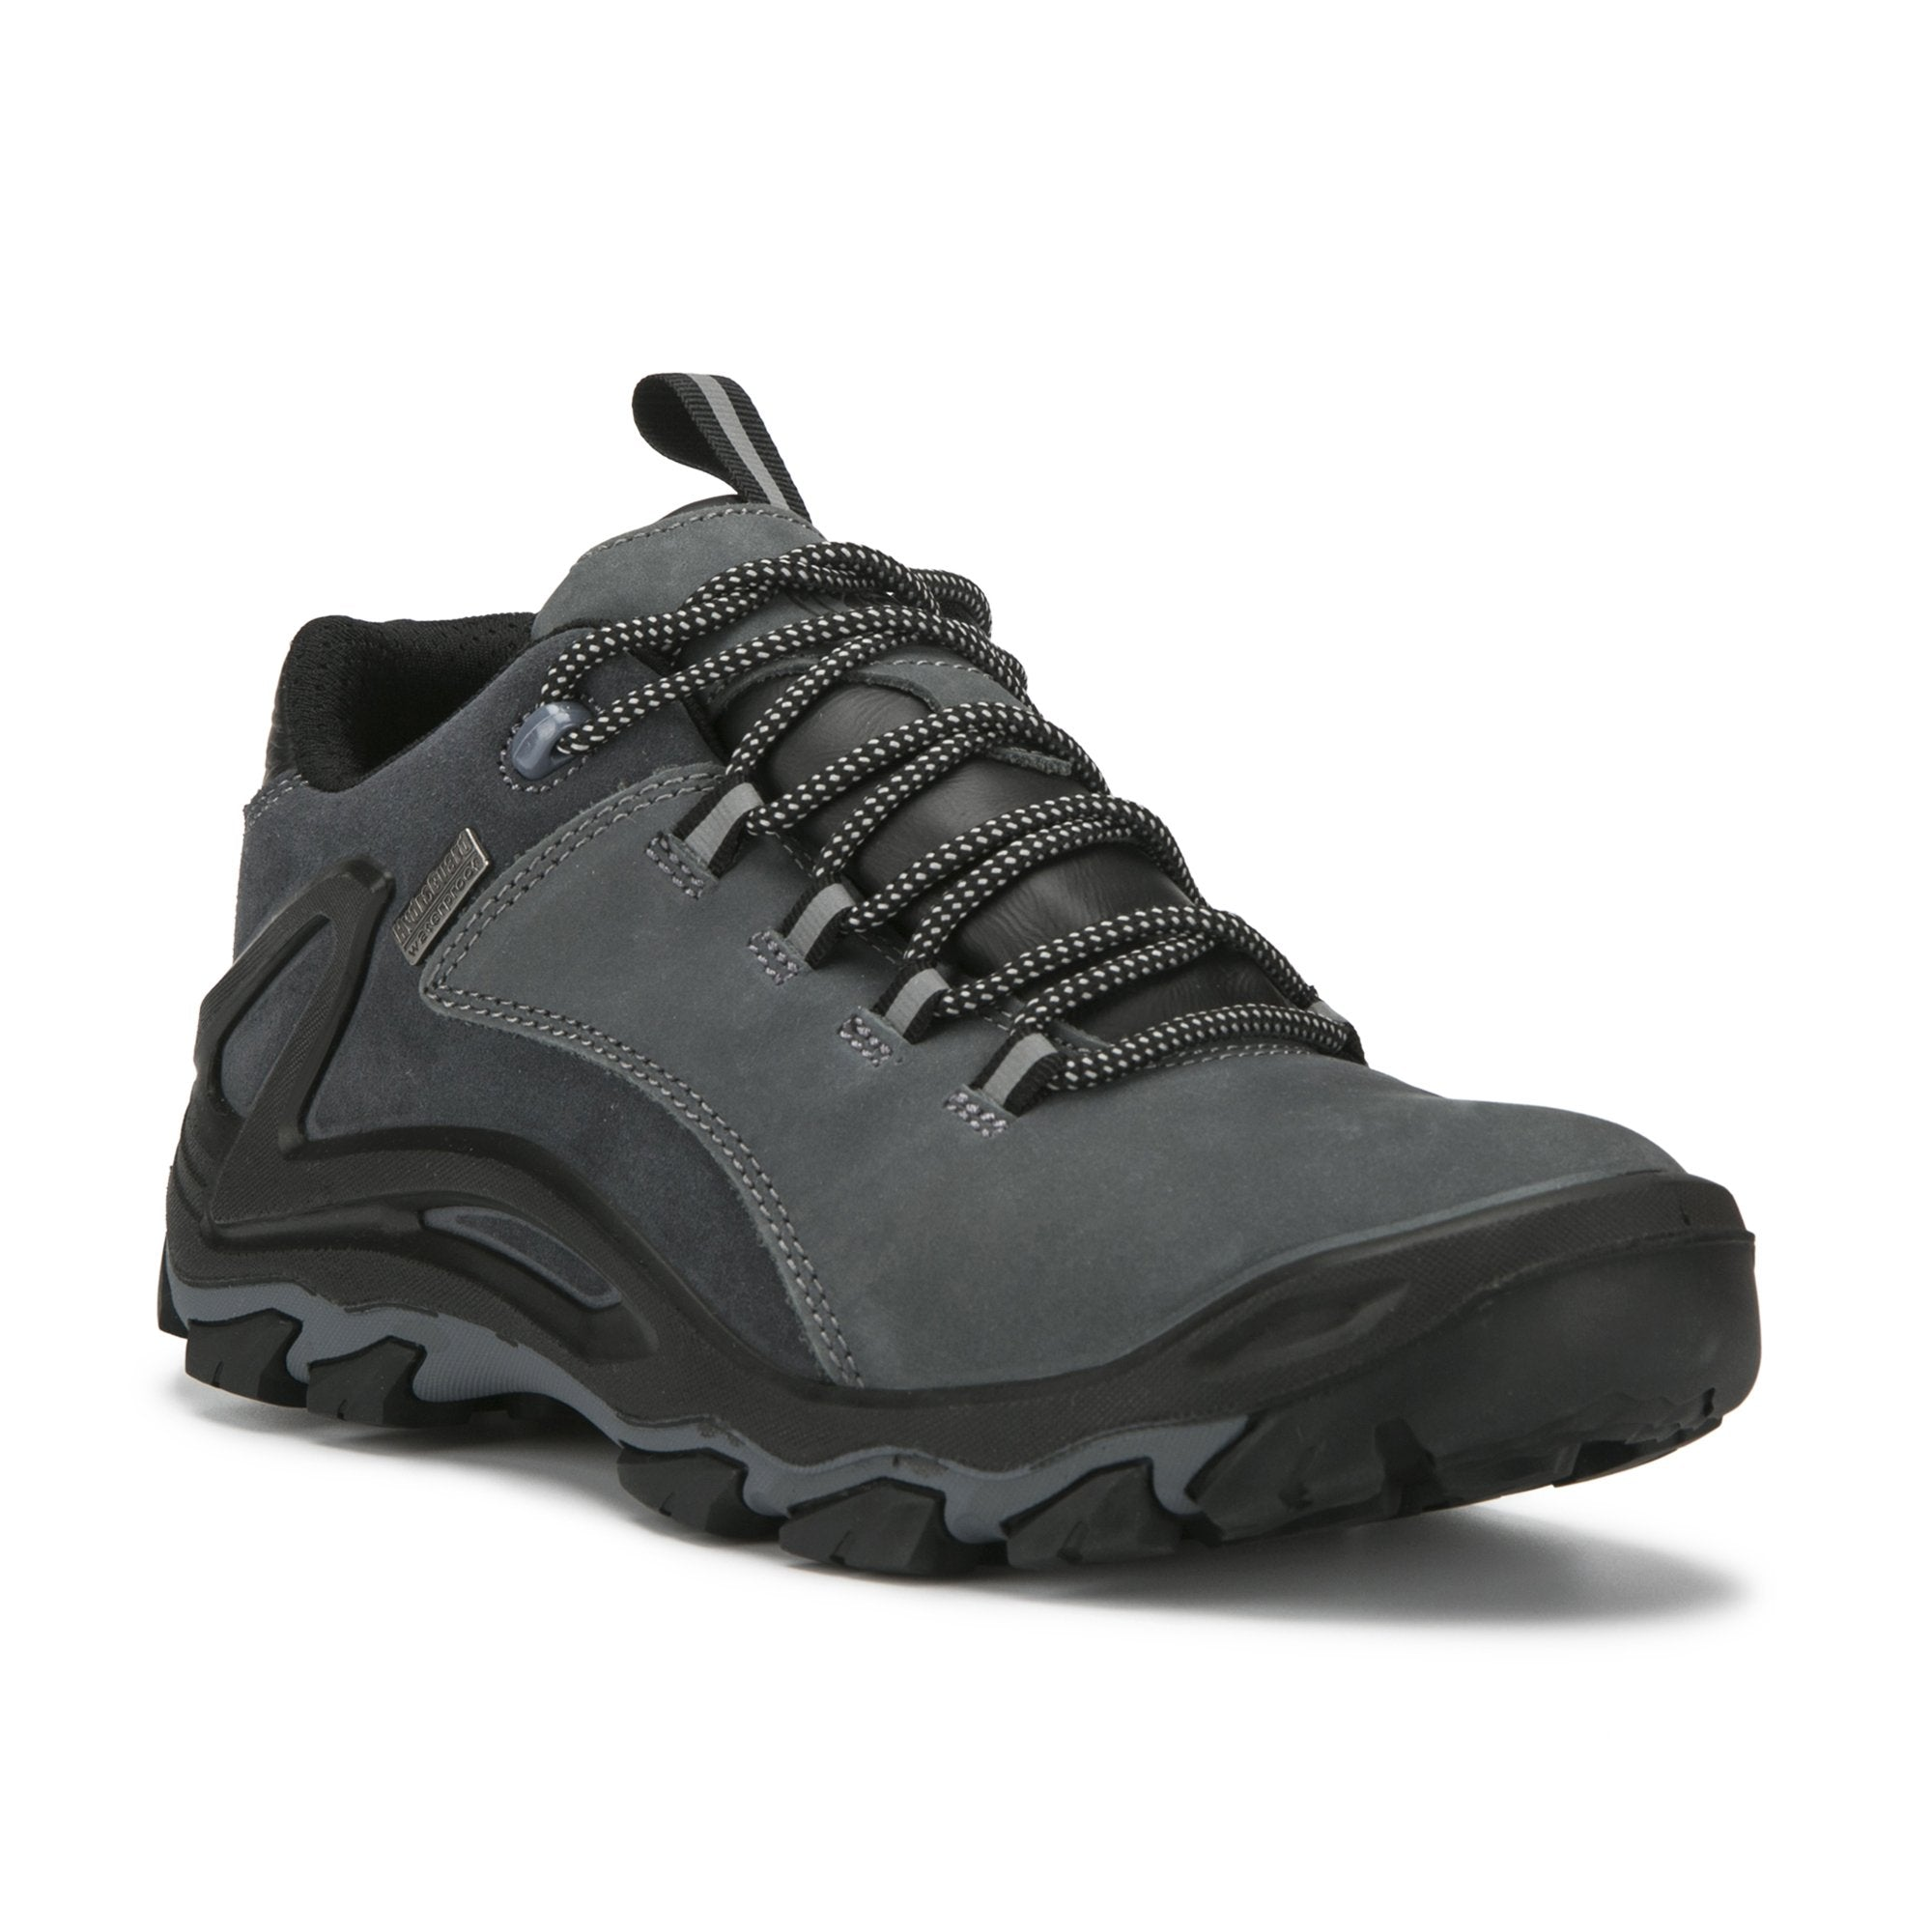 Black Slip Resistant 4 inch hiking shoe